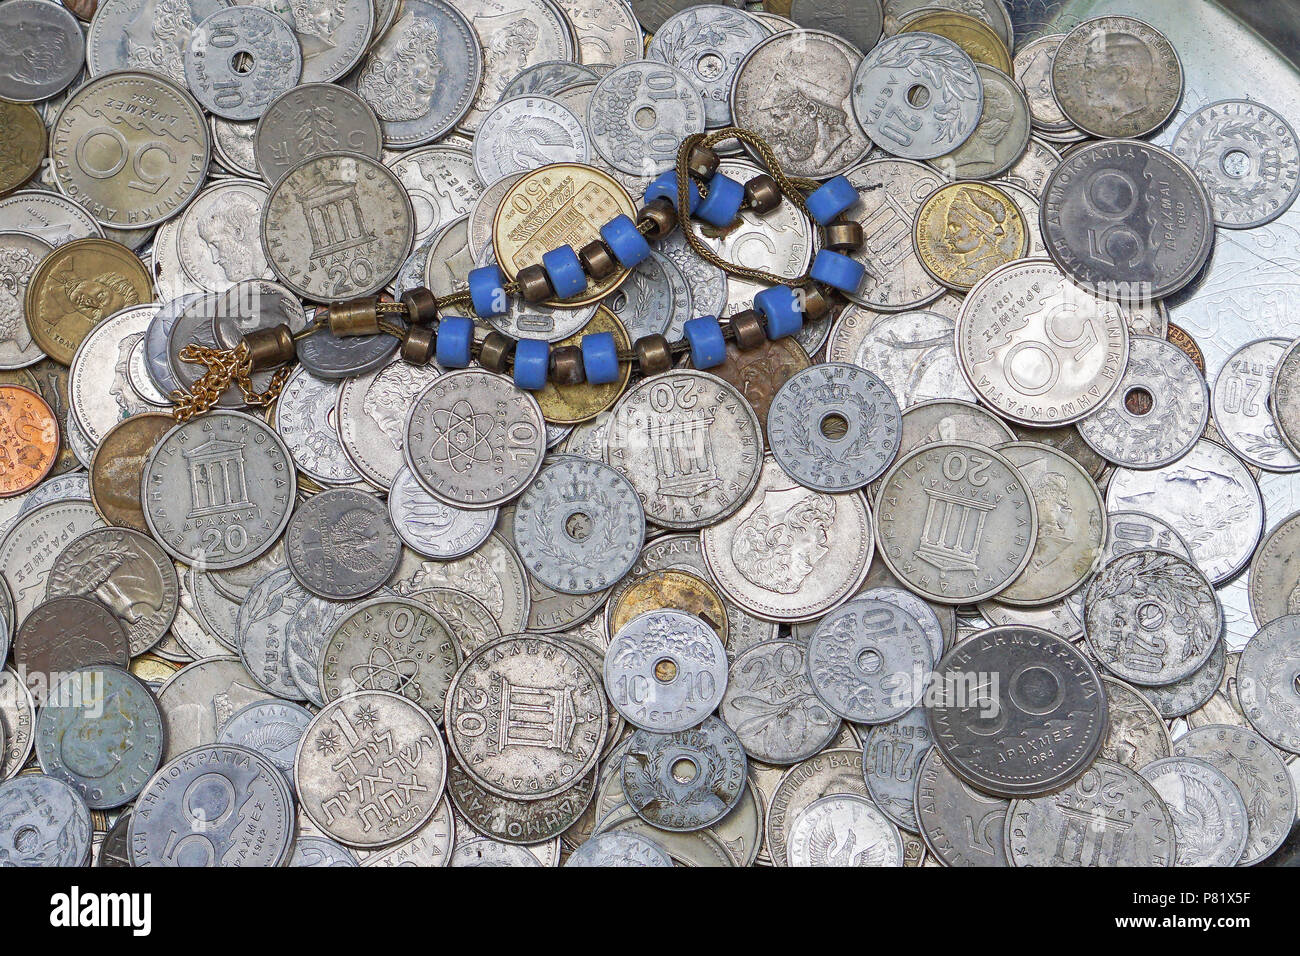 Bunch of Greek drachma coins money - Stock Image